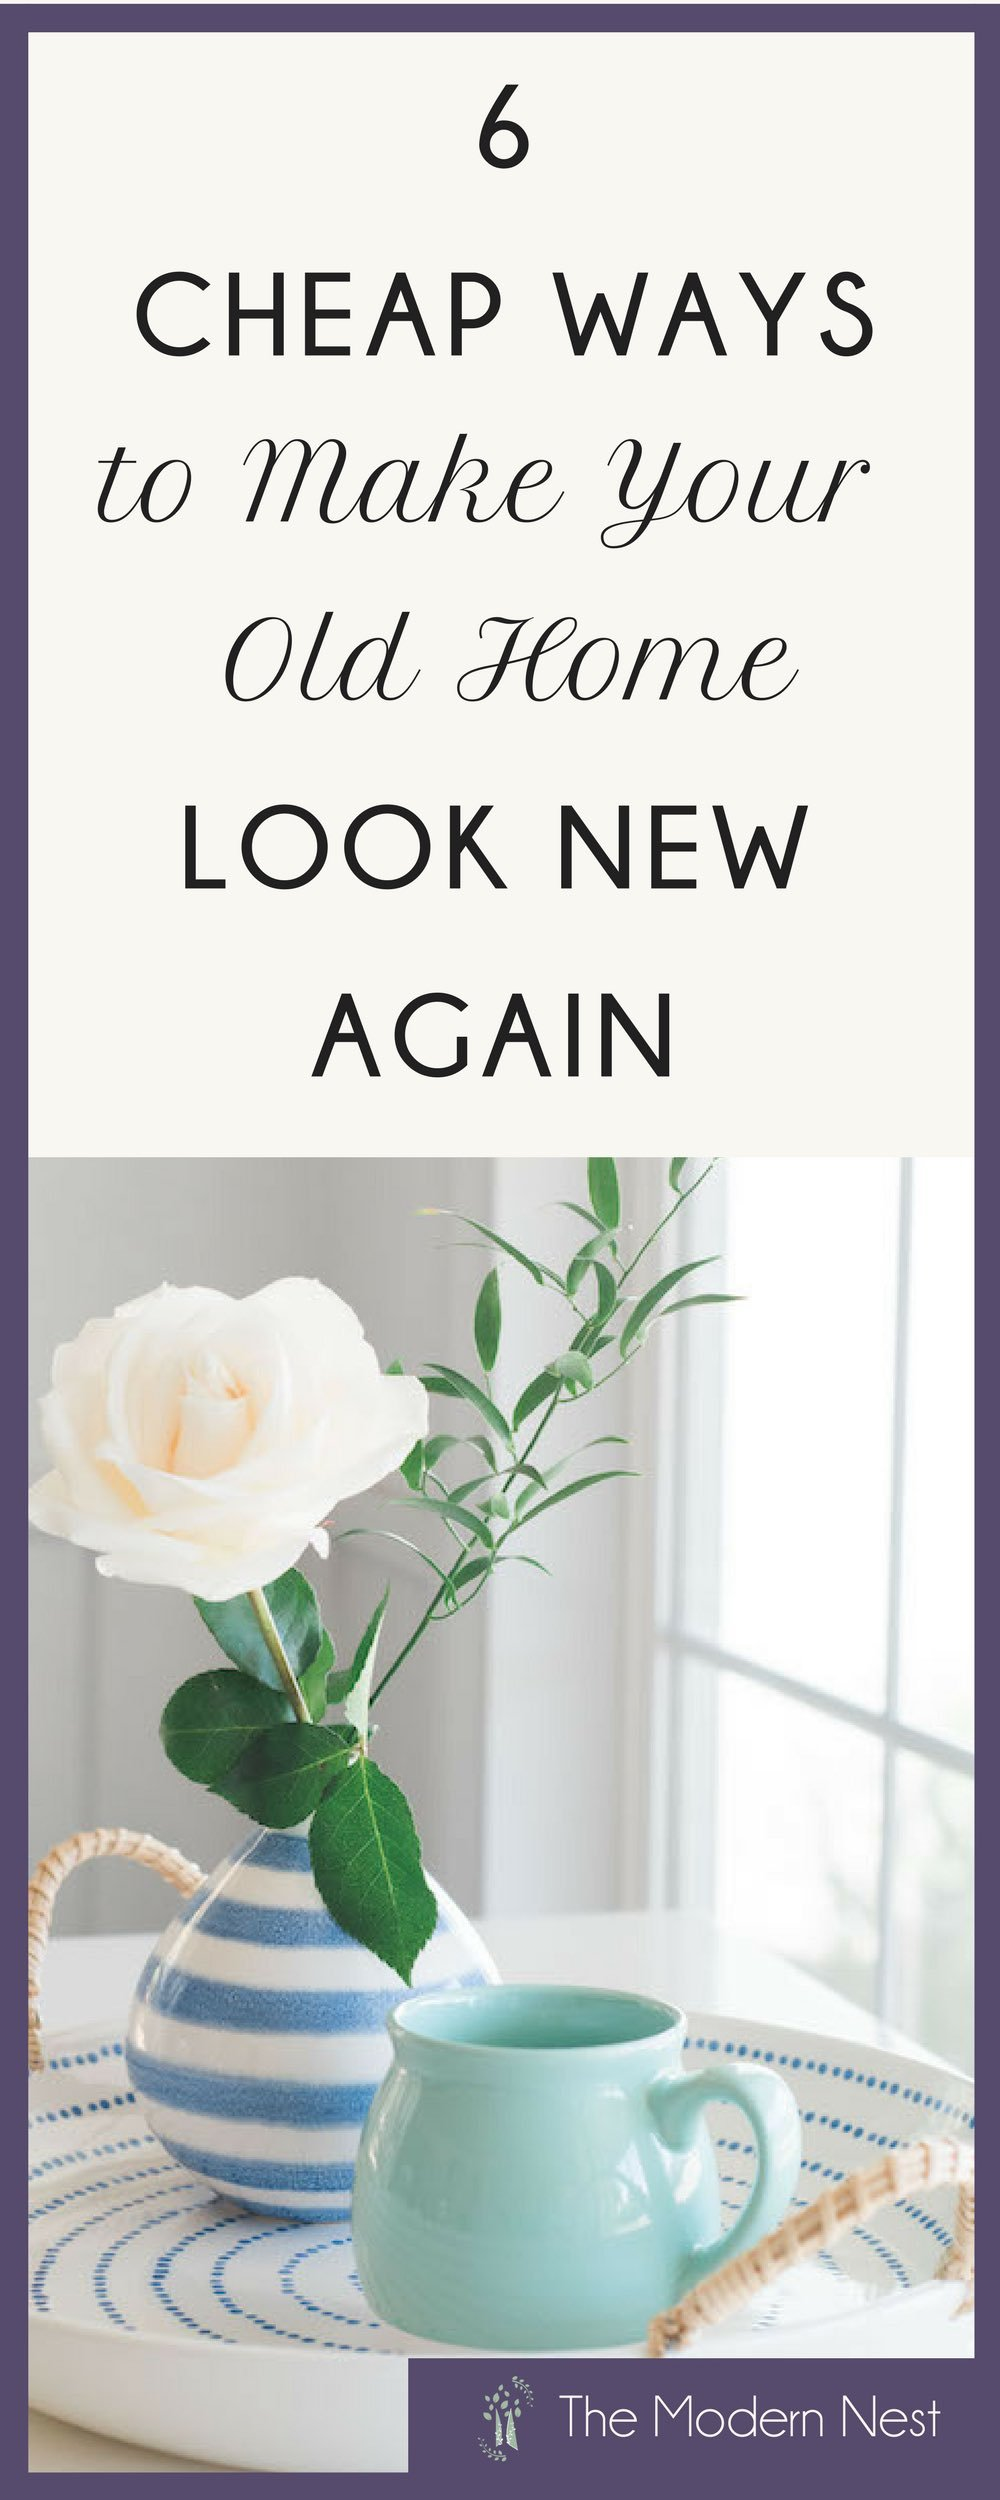 Do you live in a dated home but don't have the budget for a full home remodel? Try these six inexpensive tricks to make your old home look new again! Learn these great home improvement tips at https://www.themodernnestblog.com/archives/1615 #diy #homedecor